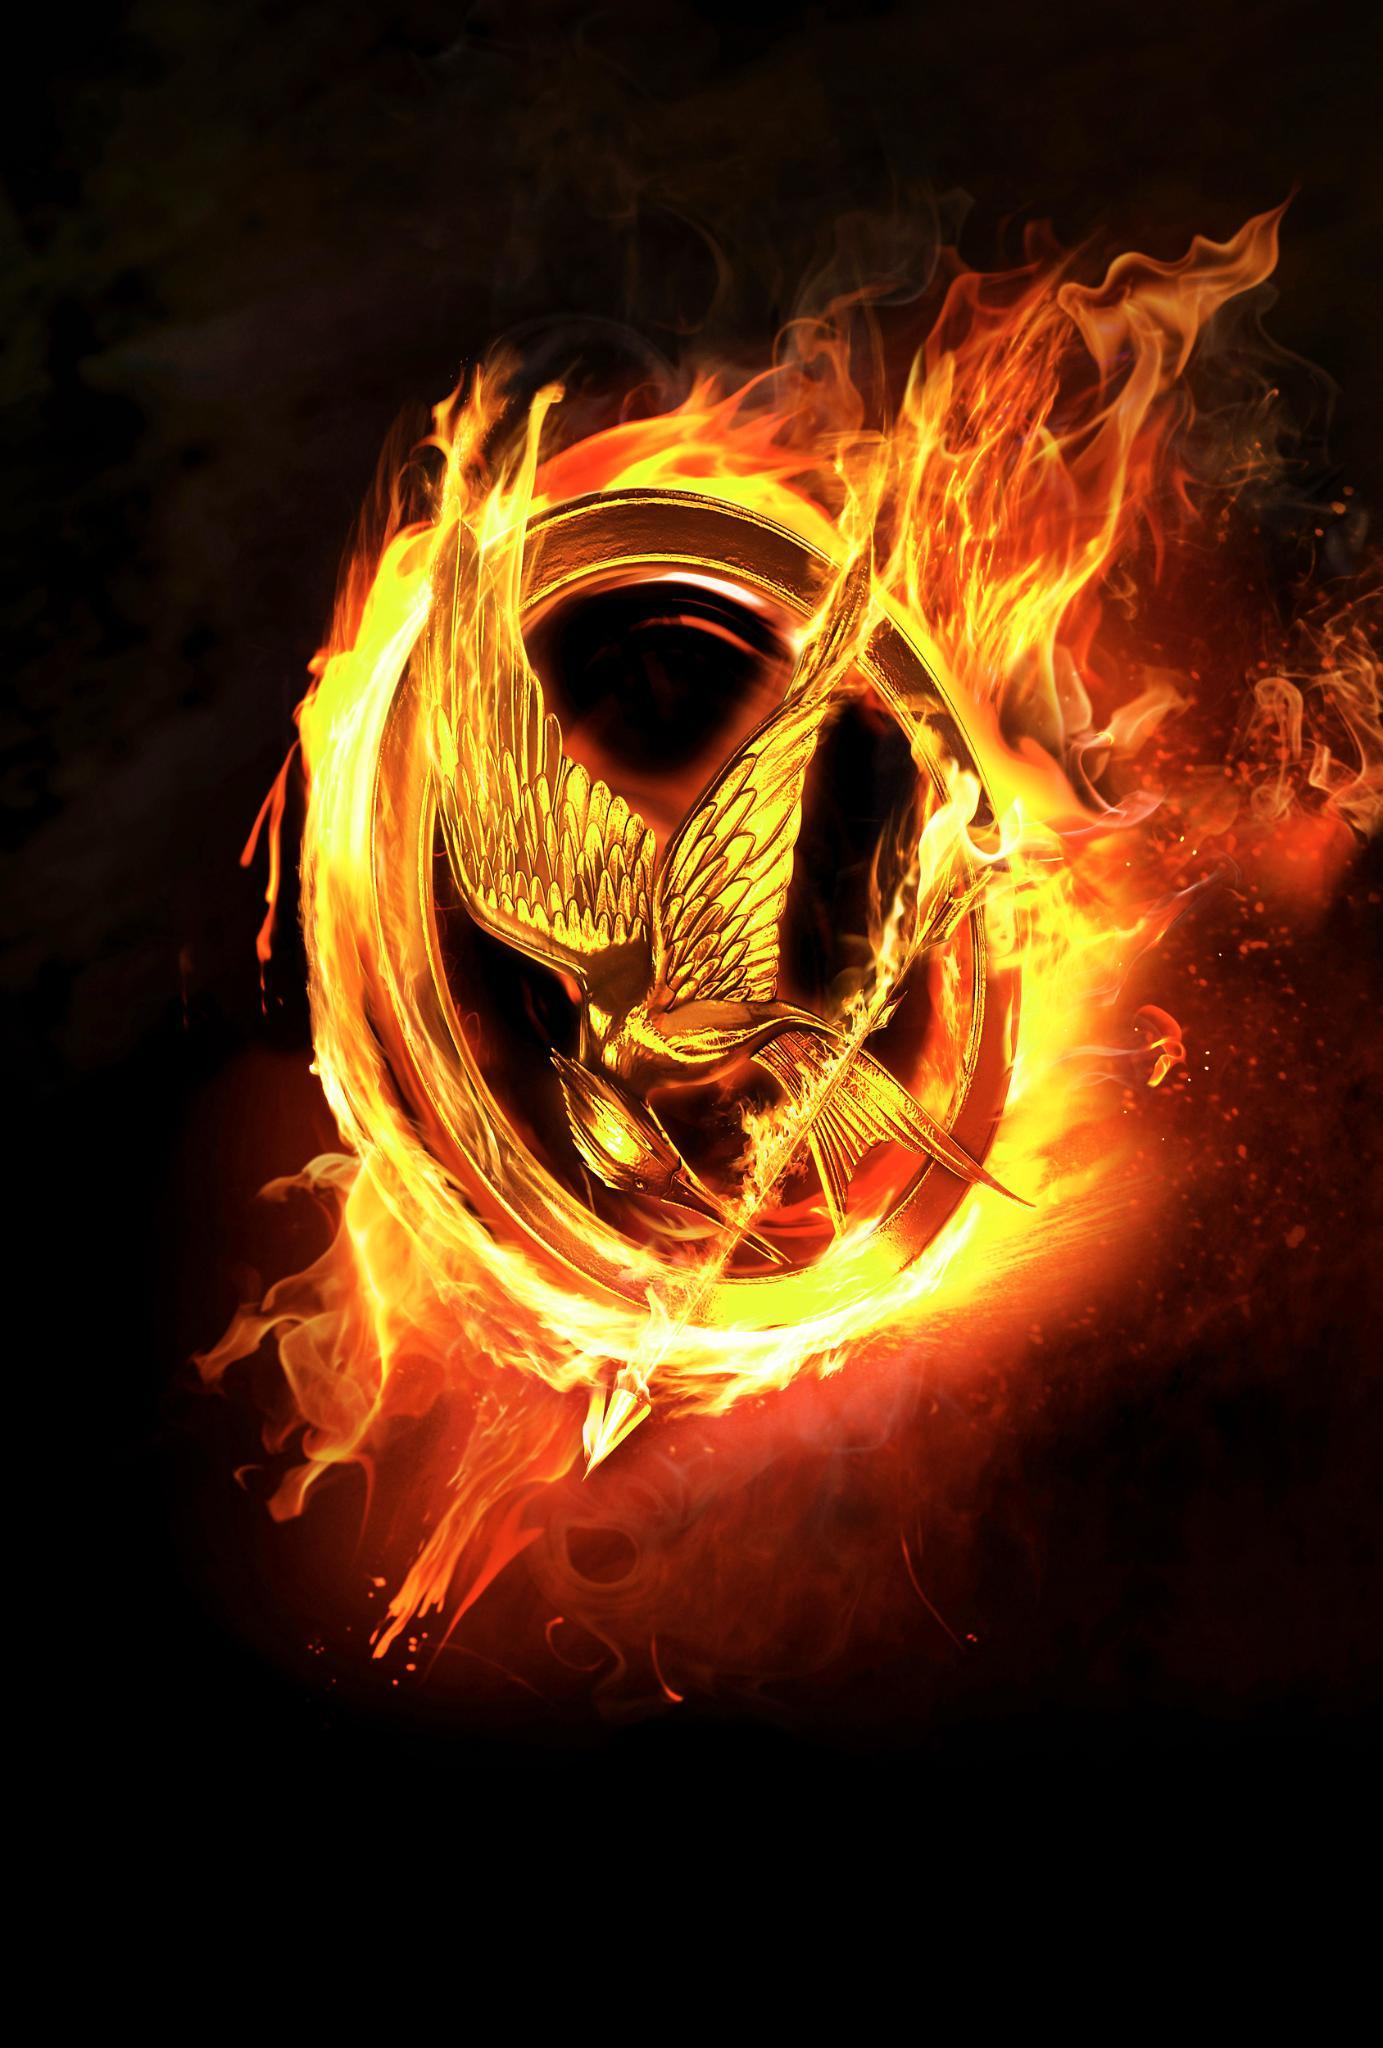 are you a true hunger games fan? (1)